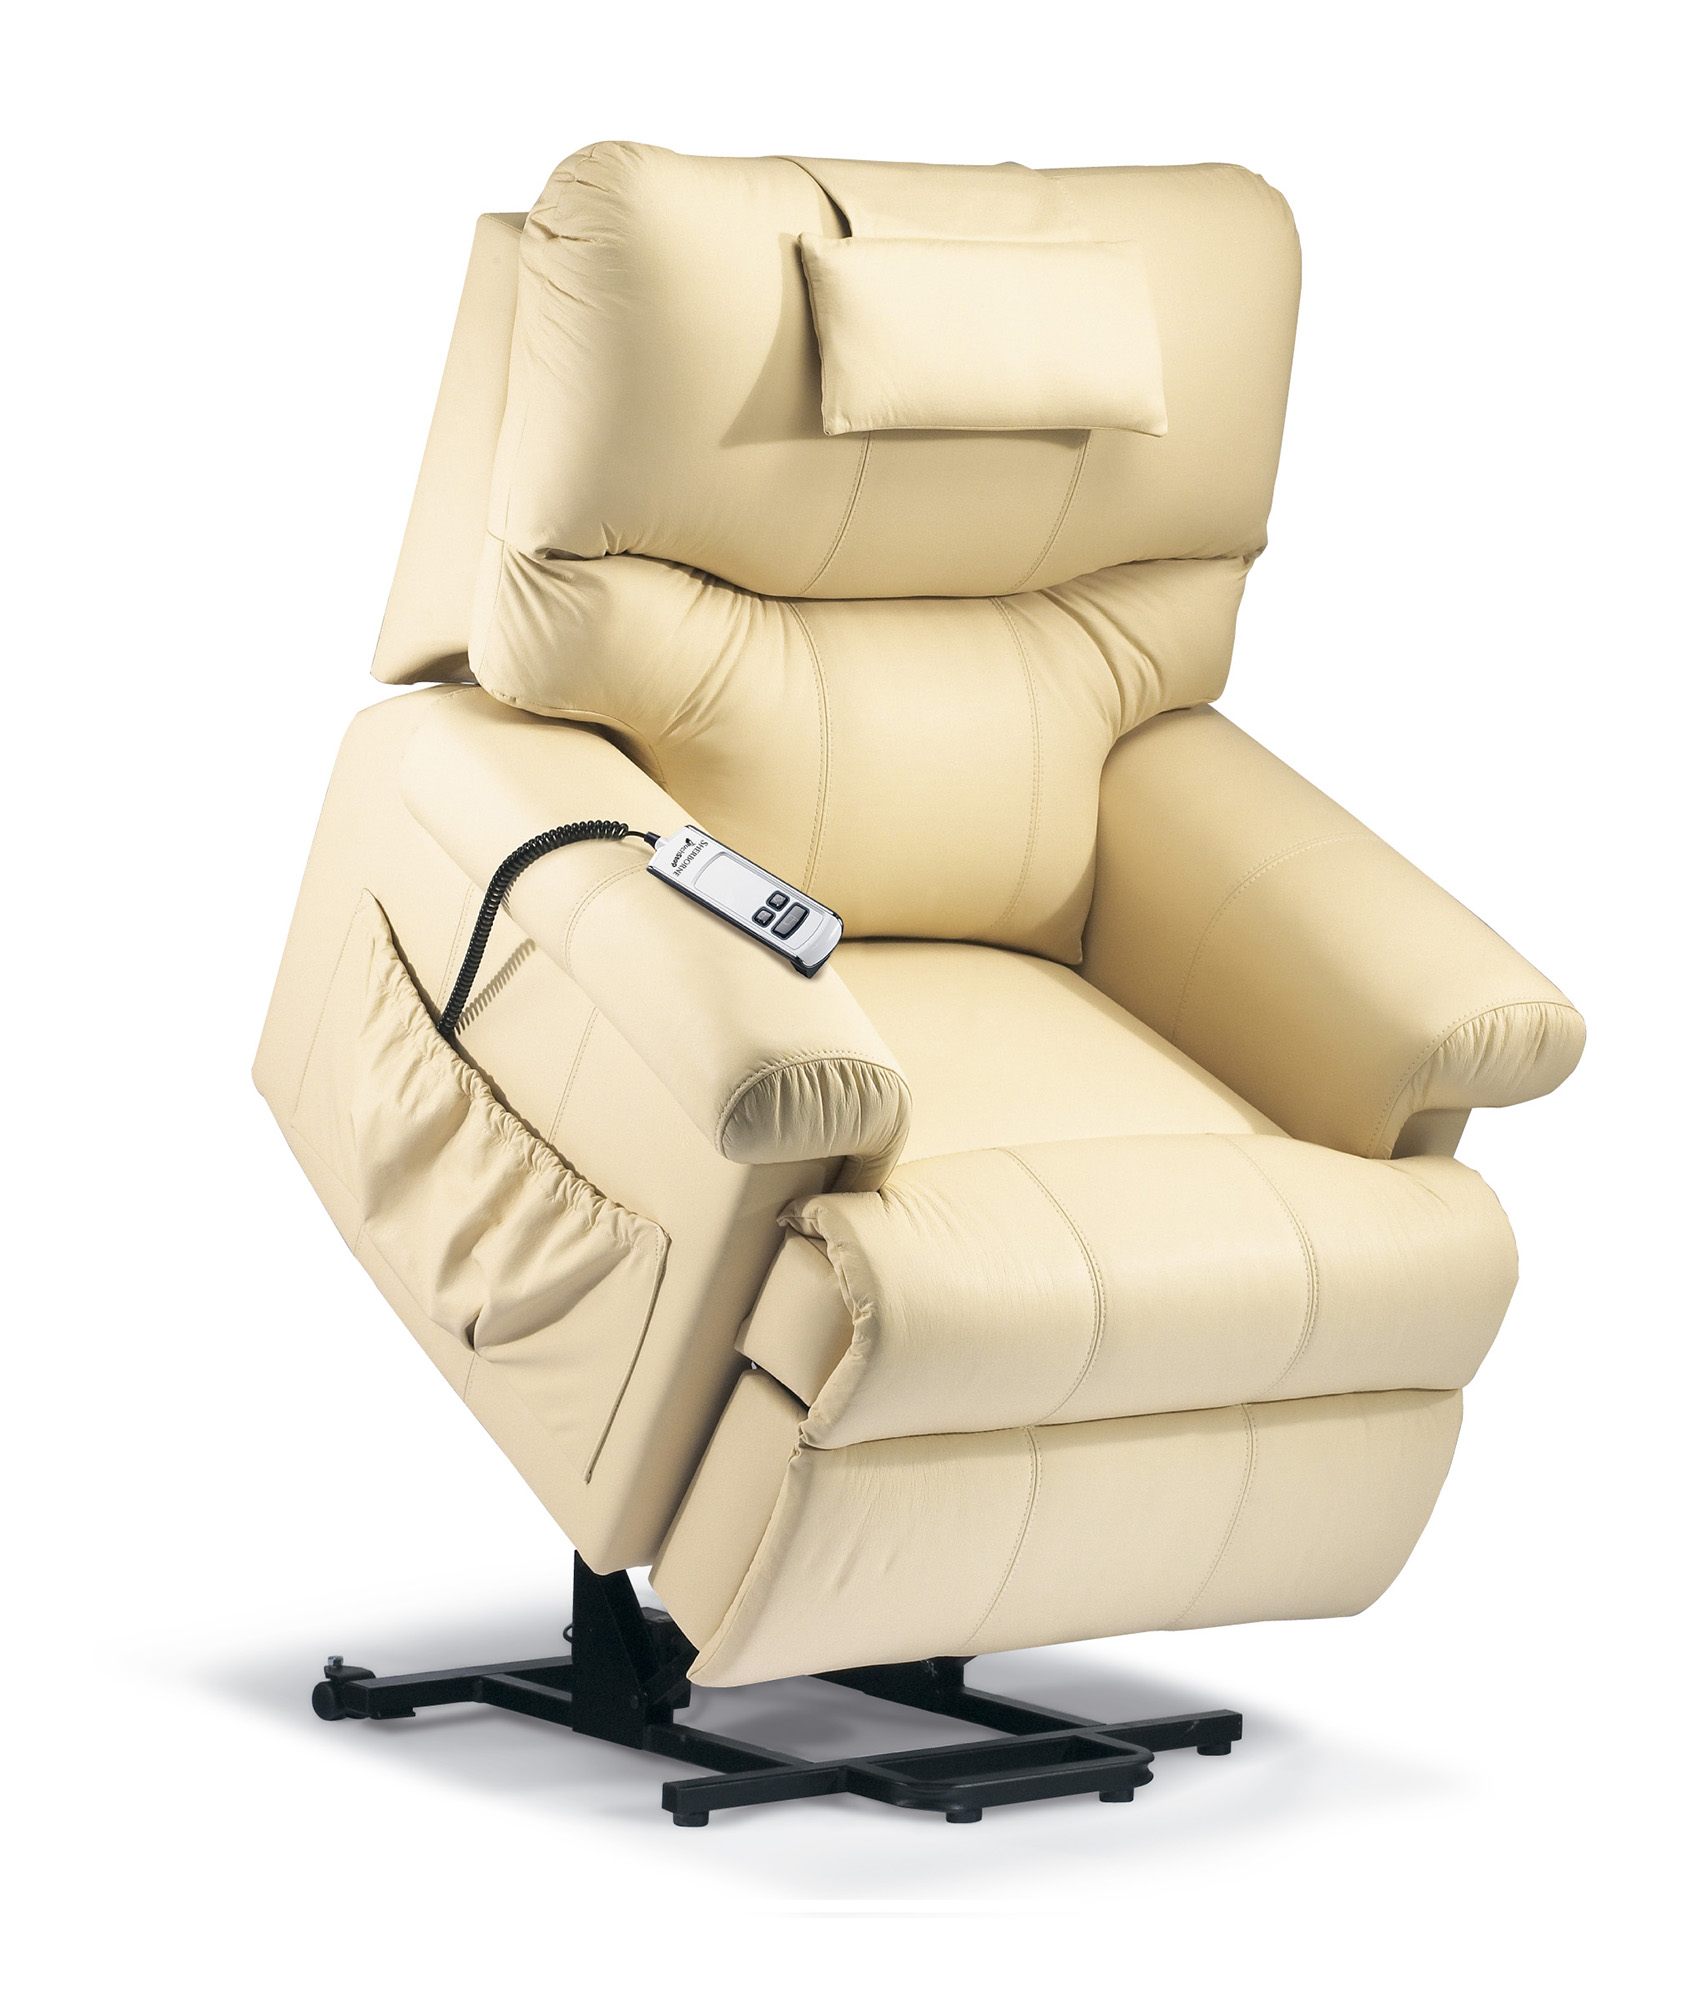 norvik care100 1 Norvic Rise and Recline Chair